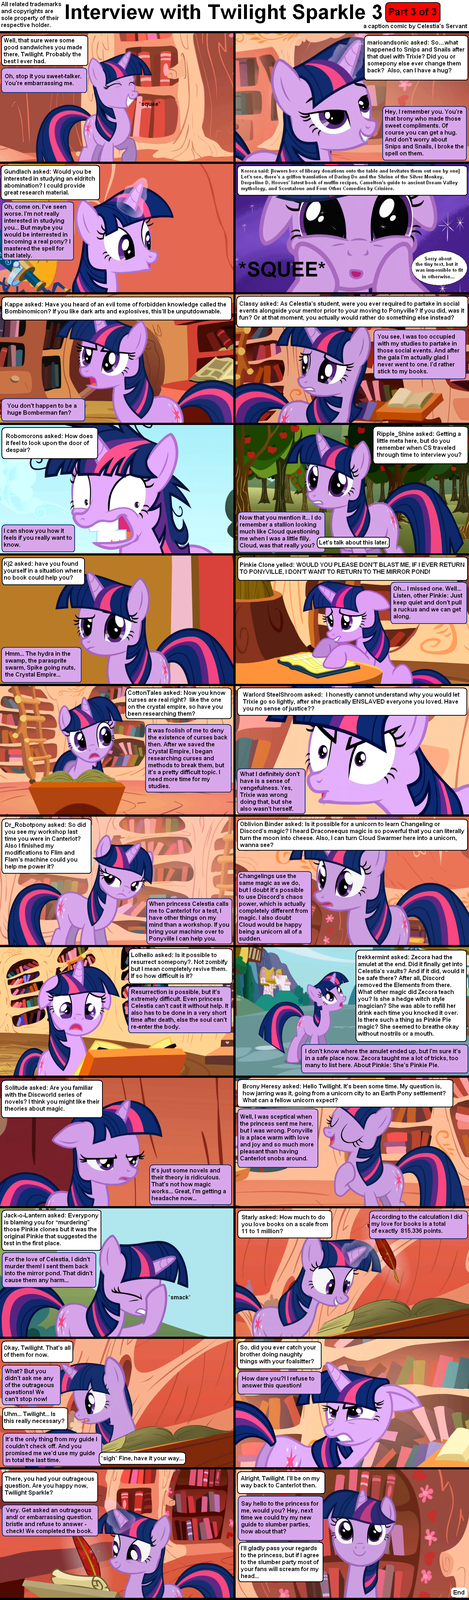 Interview with Twilight Sparkle 3